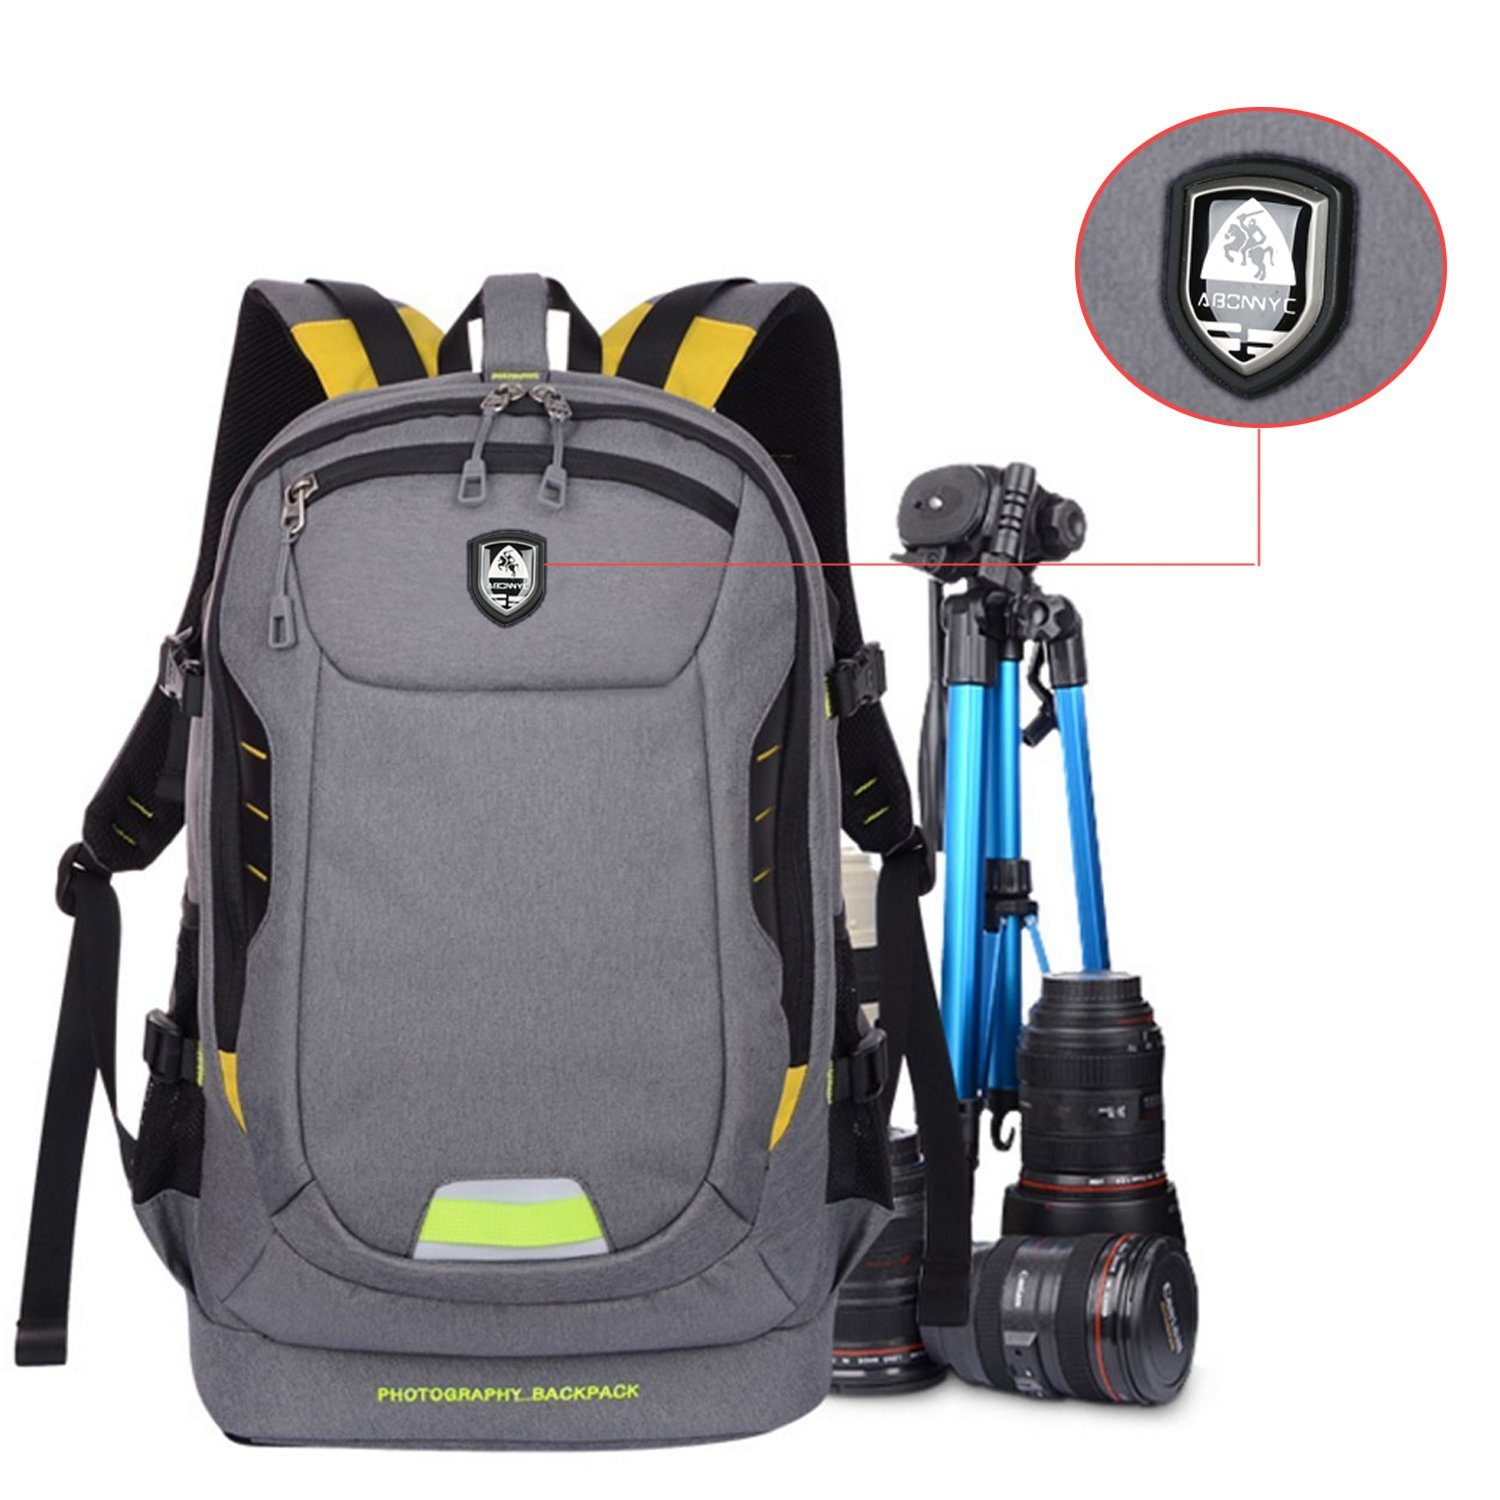 Waterproof Photo Backpack Camera Bag For Sony Canon Eos Nikon Panasonic Olympus Fujifilm Outdoor Travel Camera Case Lens Bag And To Have A Long Life. Accessories & Parts Camera/video Bags